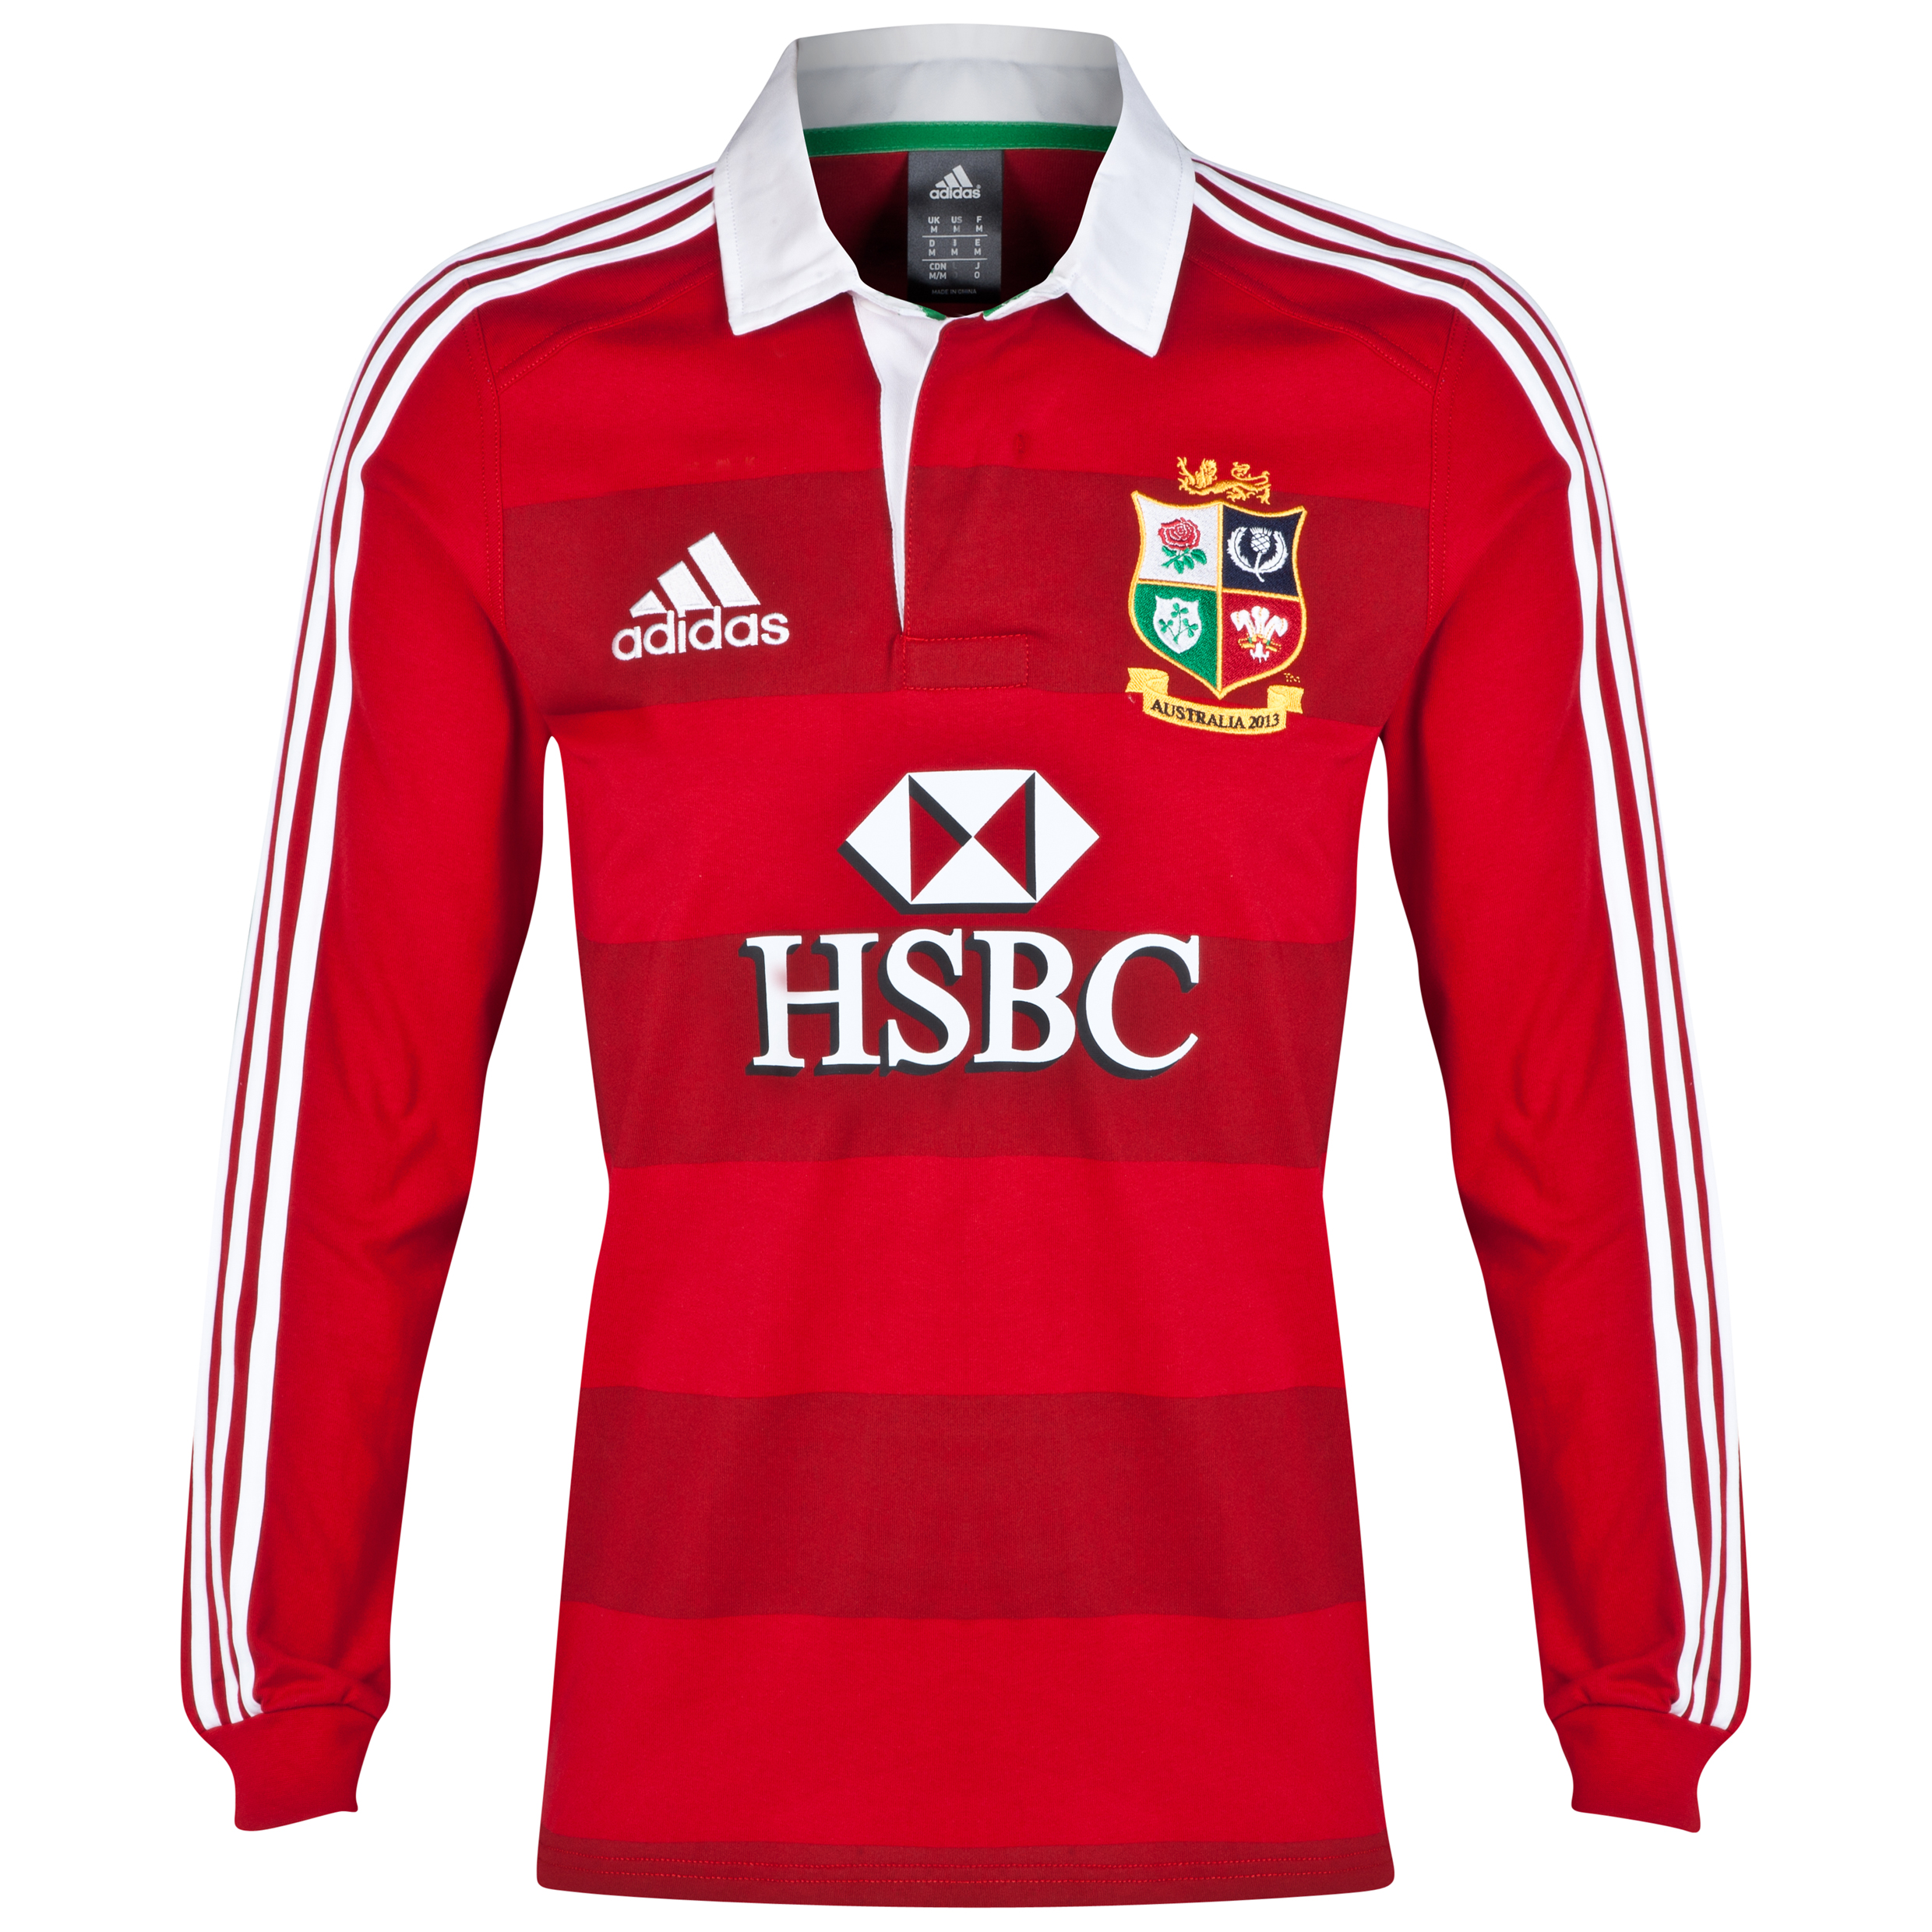 adidas British and Irish Lions Supporters Shirt - Long Sleeve - University Red/White